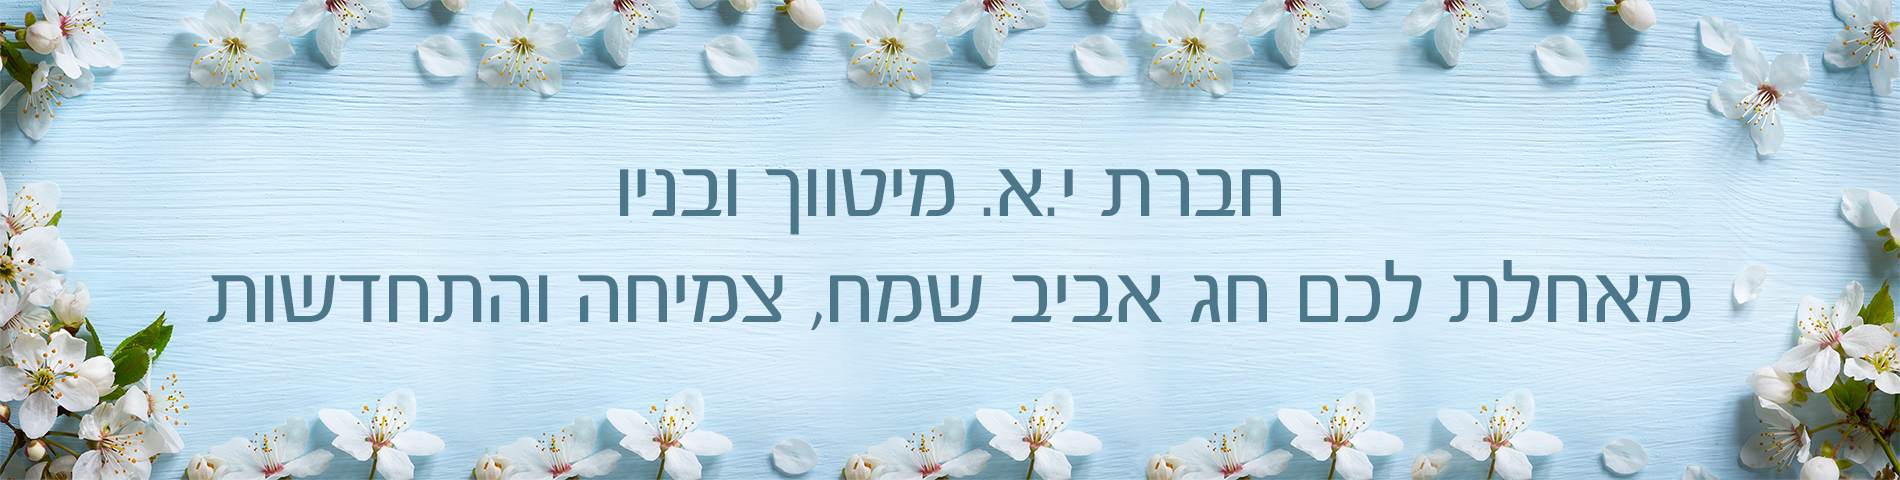 passover banner 2019